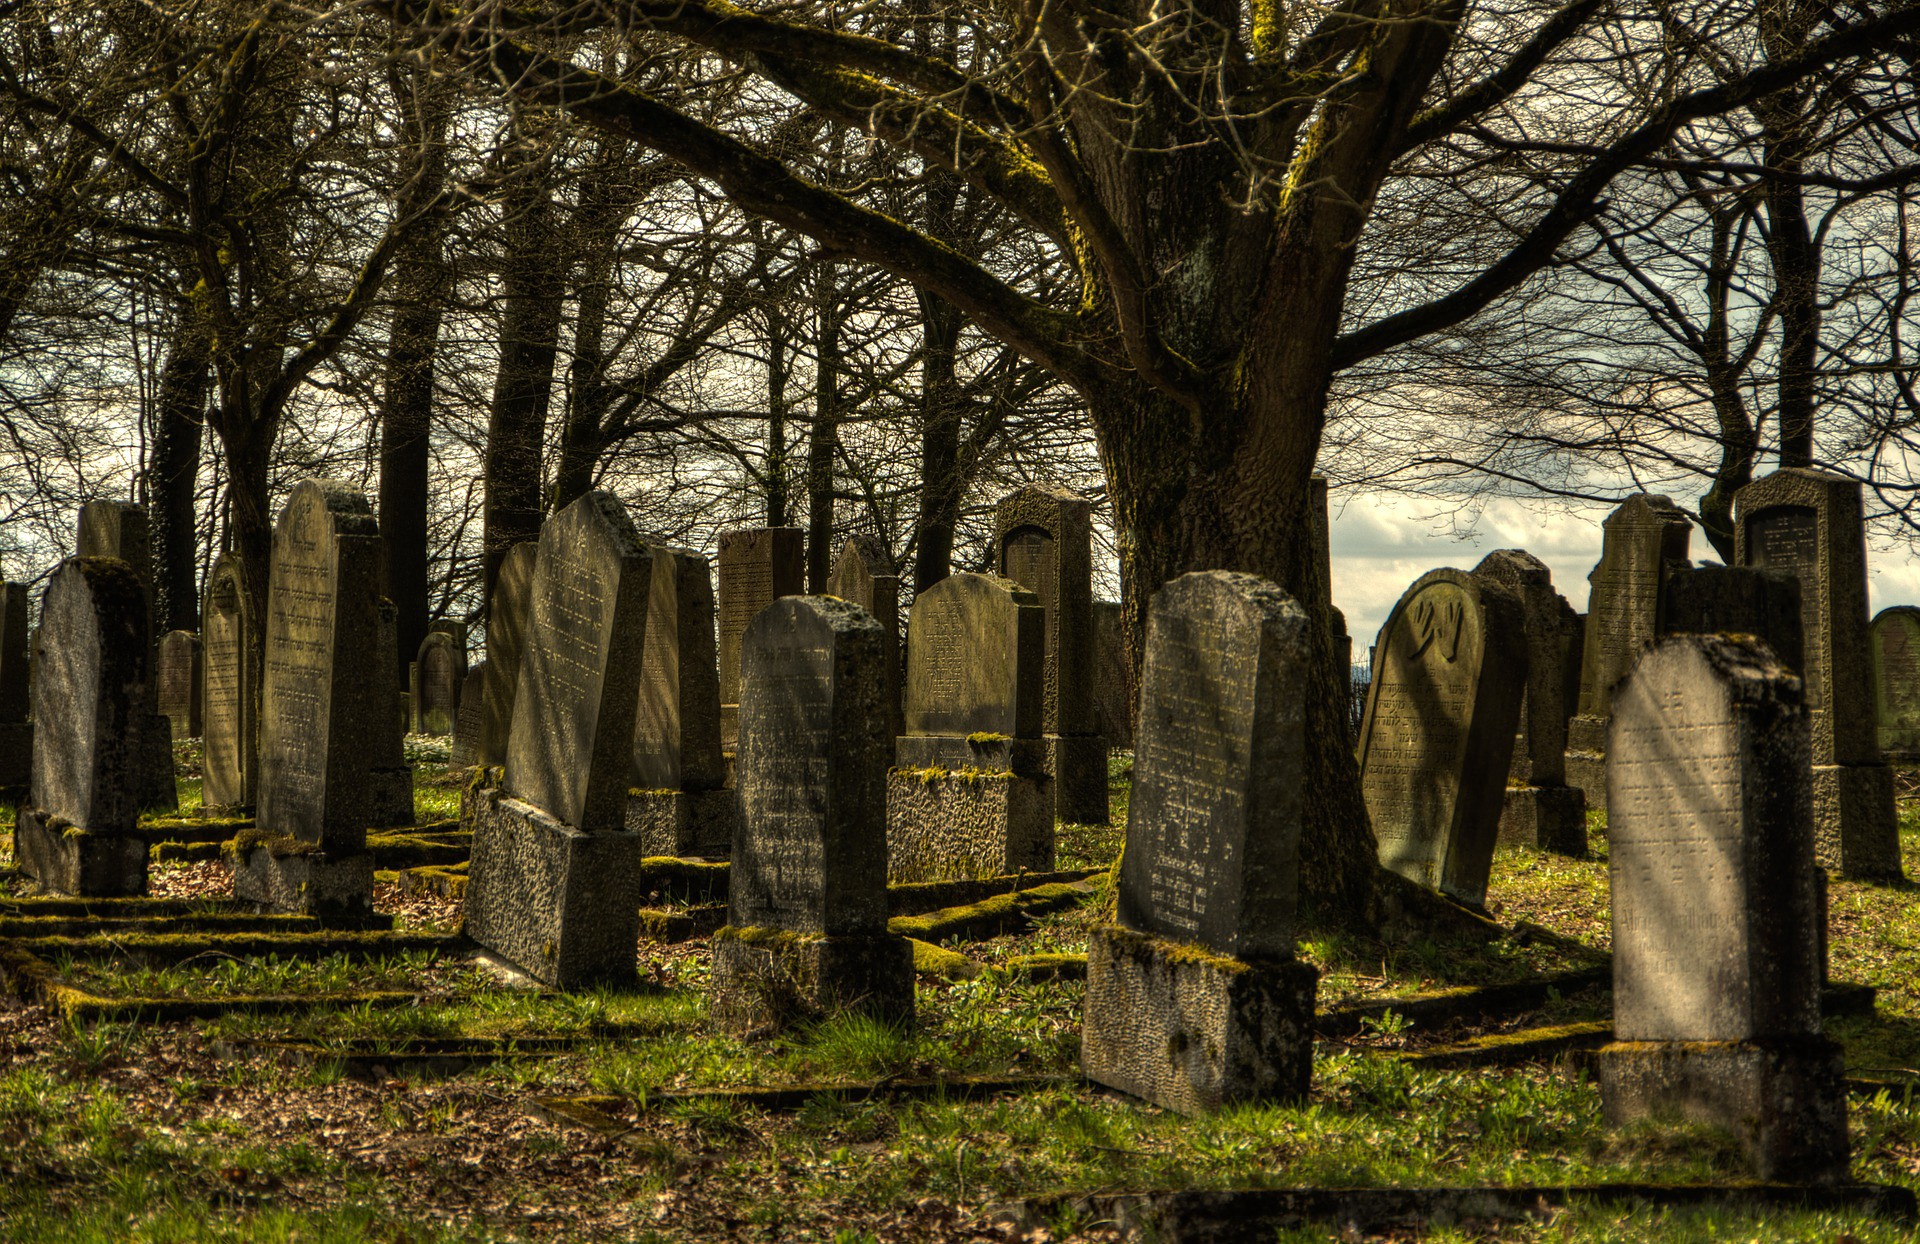 An old cemetery with grey tombstones with moss growing on them.